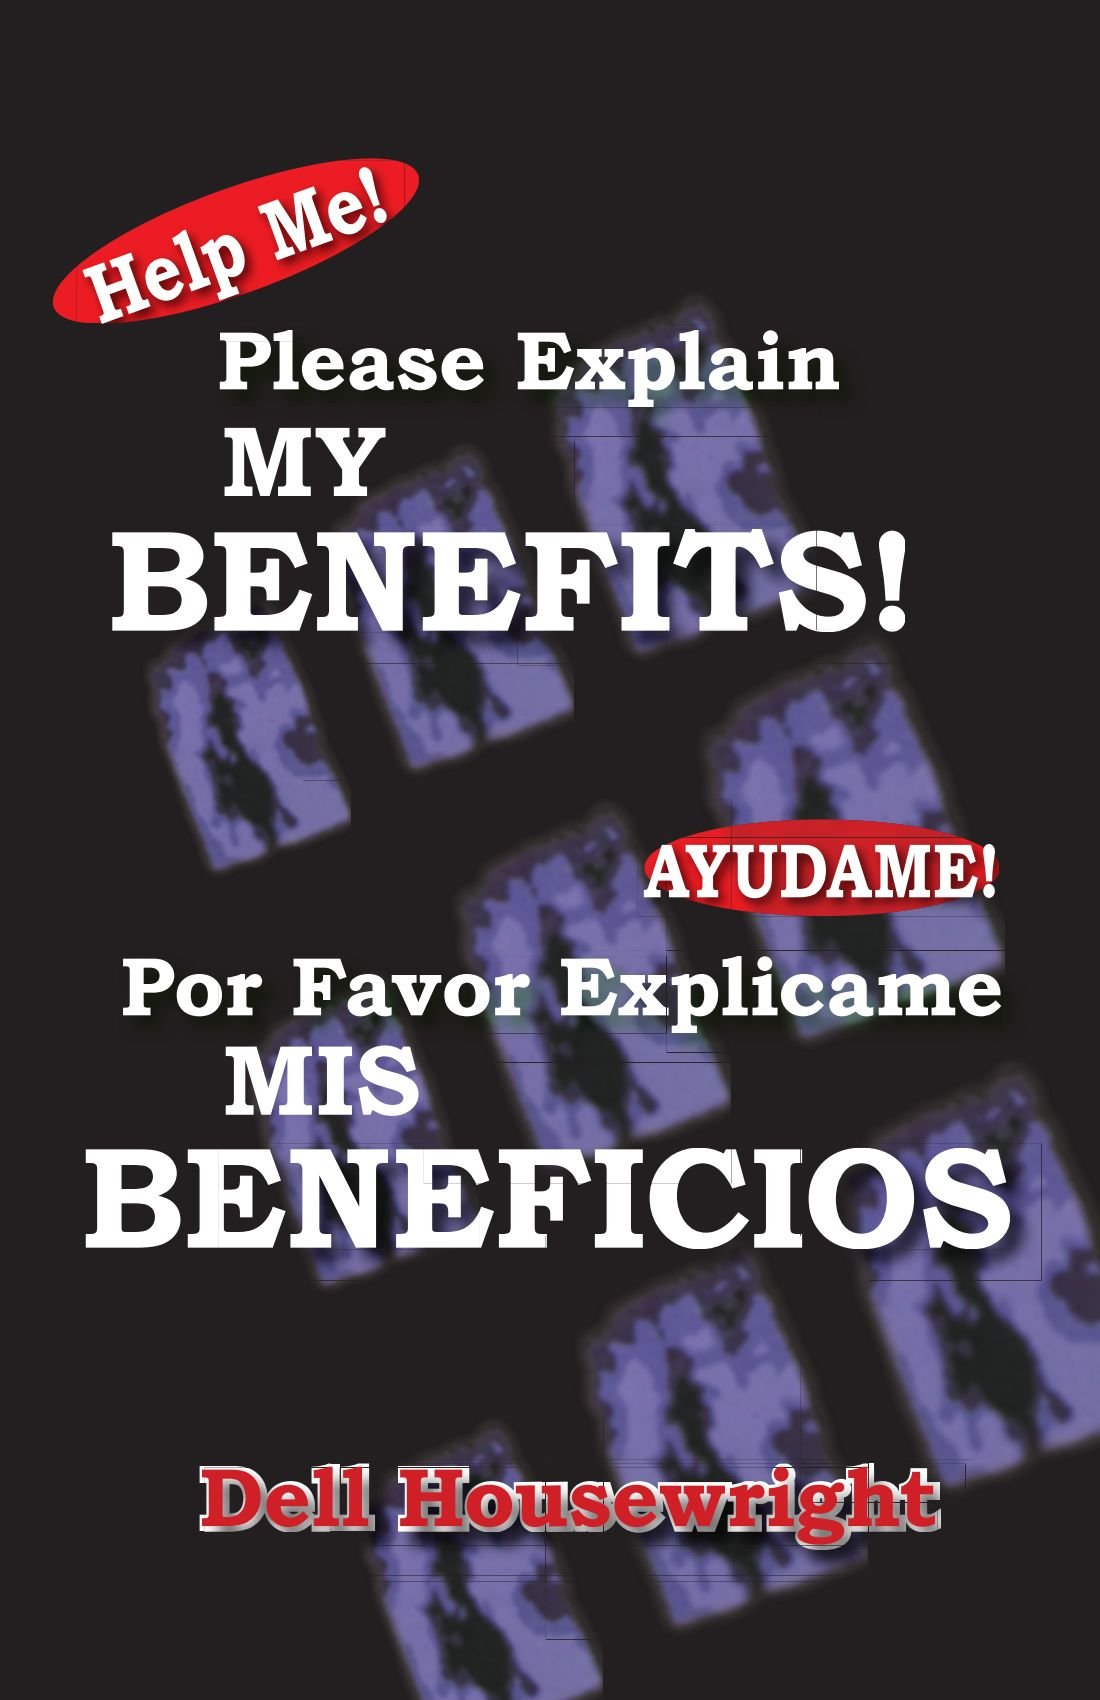 Help Me!/Ayudame!: Please Explain My Benefits/Por Favor Explicame Mis Beneficios (Spanish Edition) by Trafford Publishing